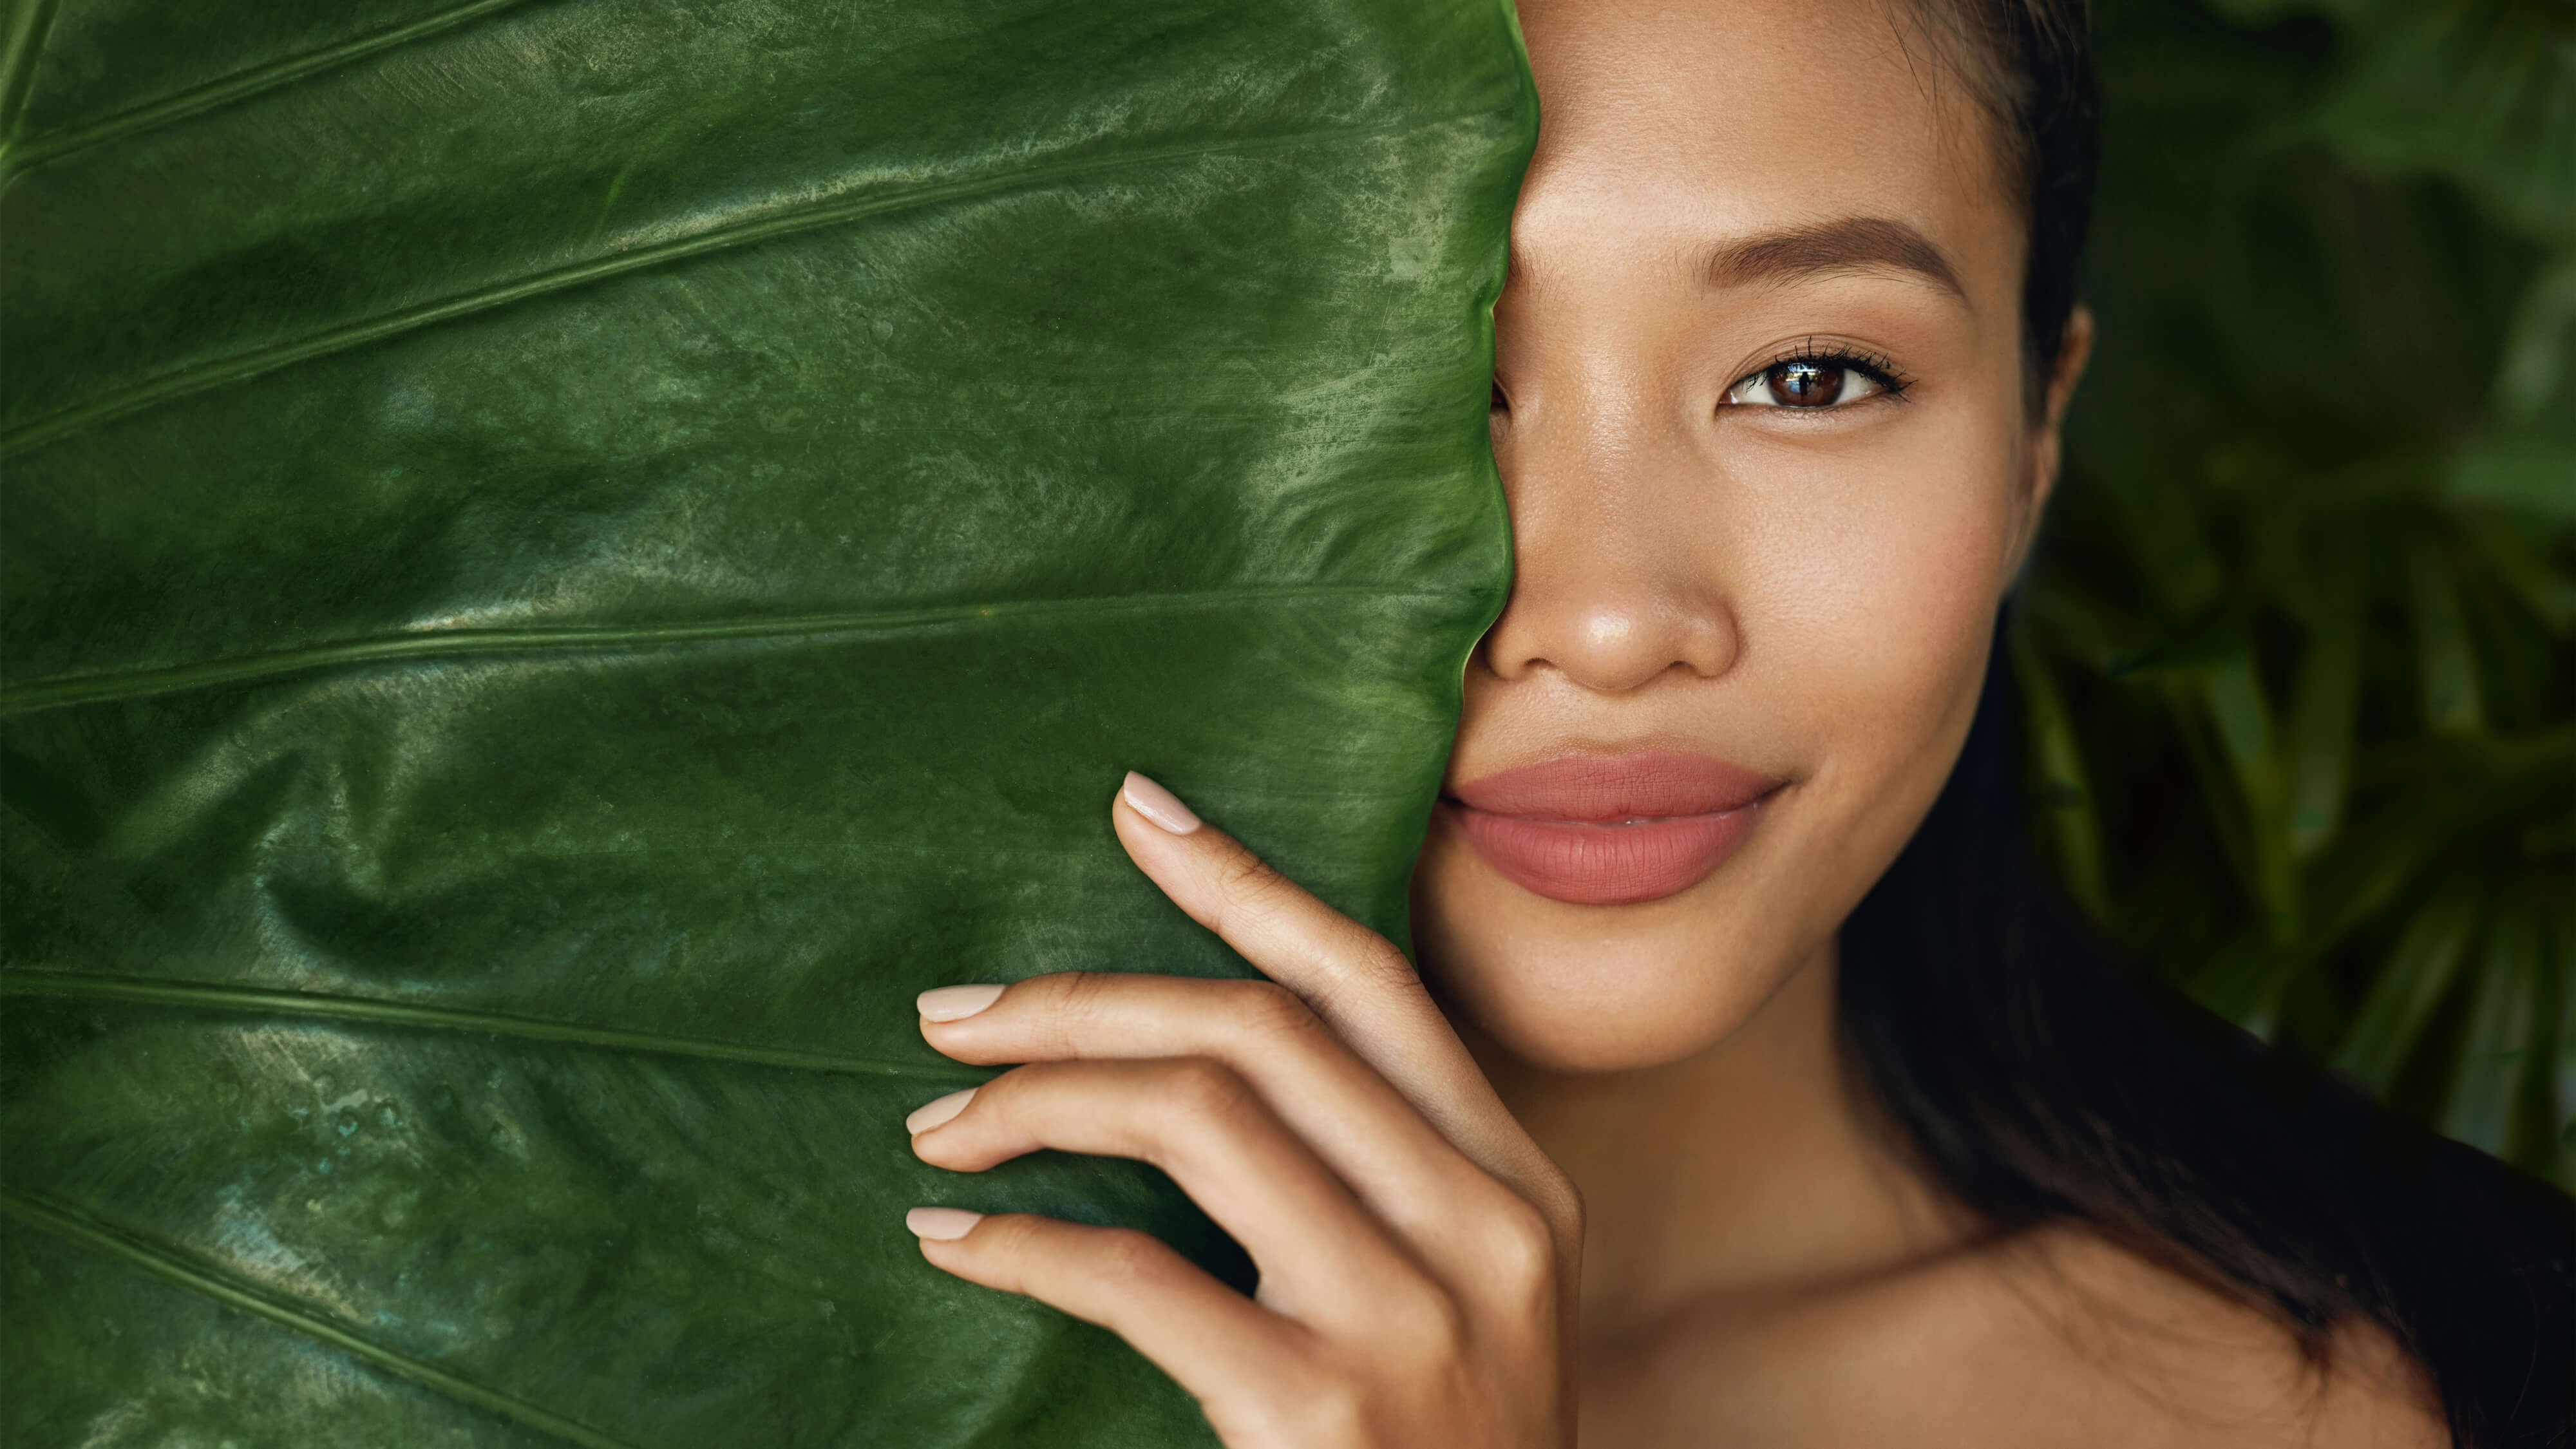 Beautiful model hiding half her face behind a large freen leaf, holding the leaf with one of her manicured hands